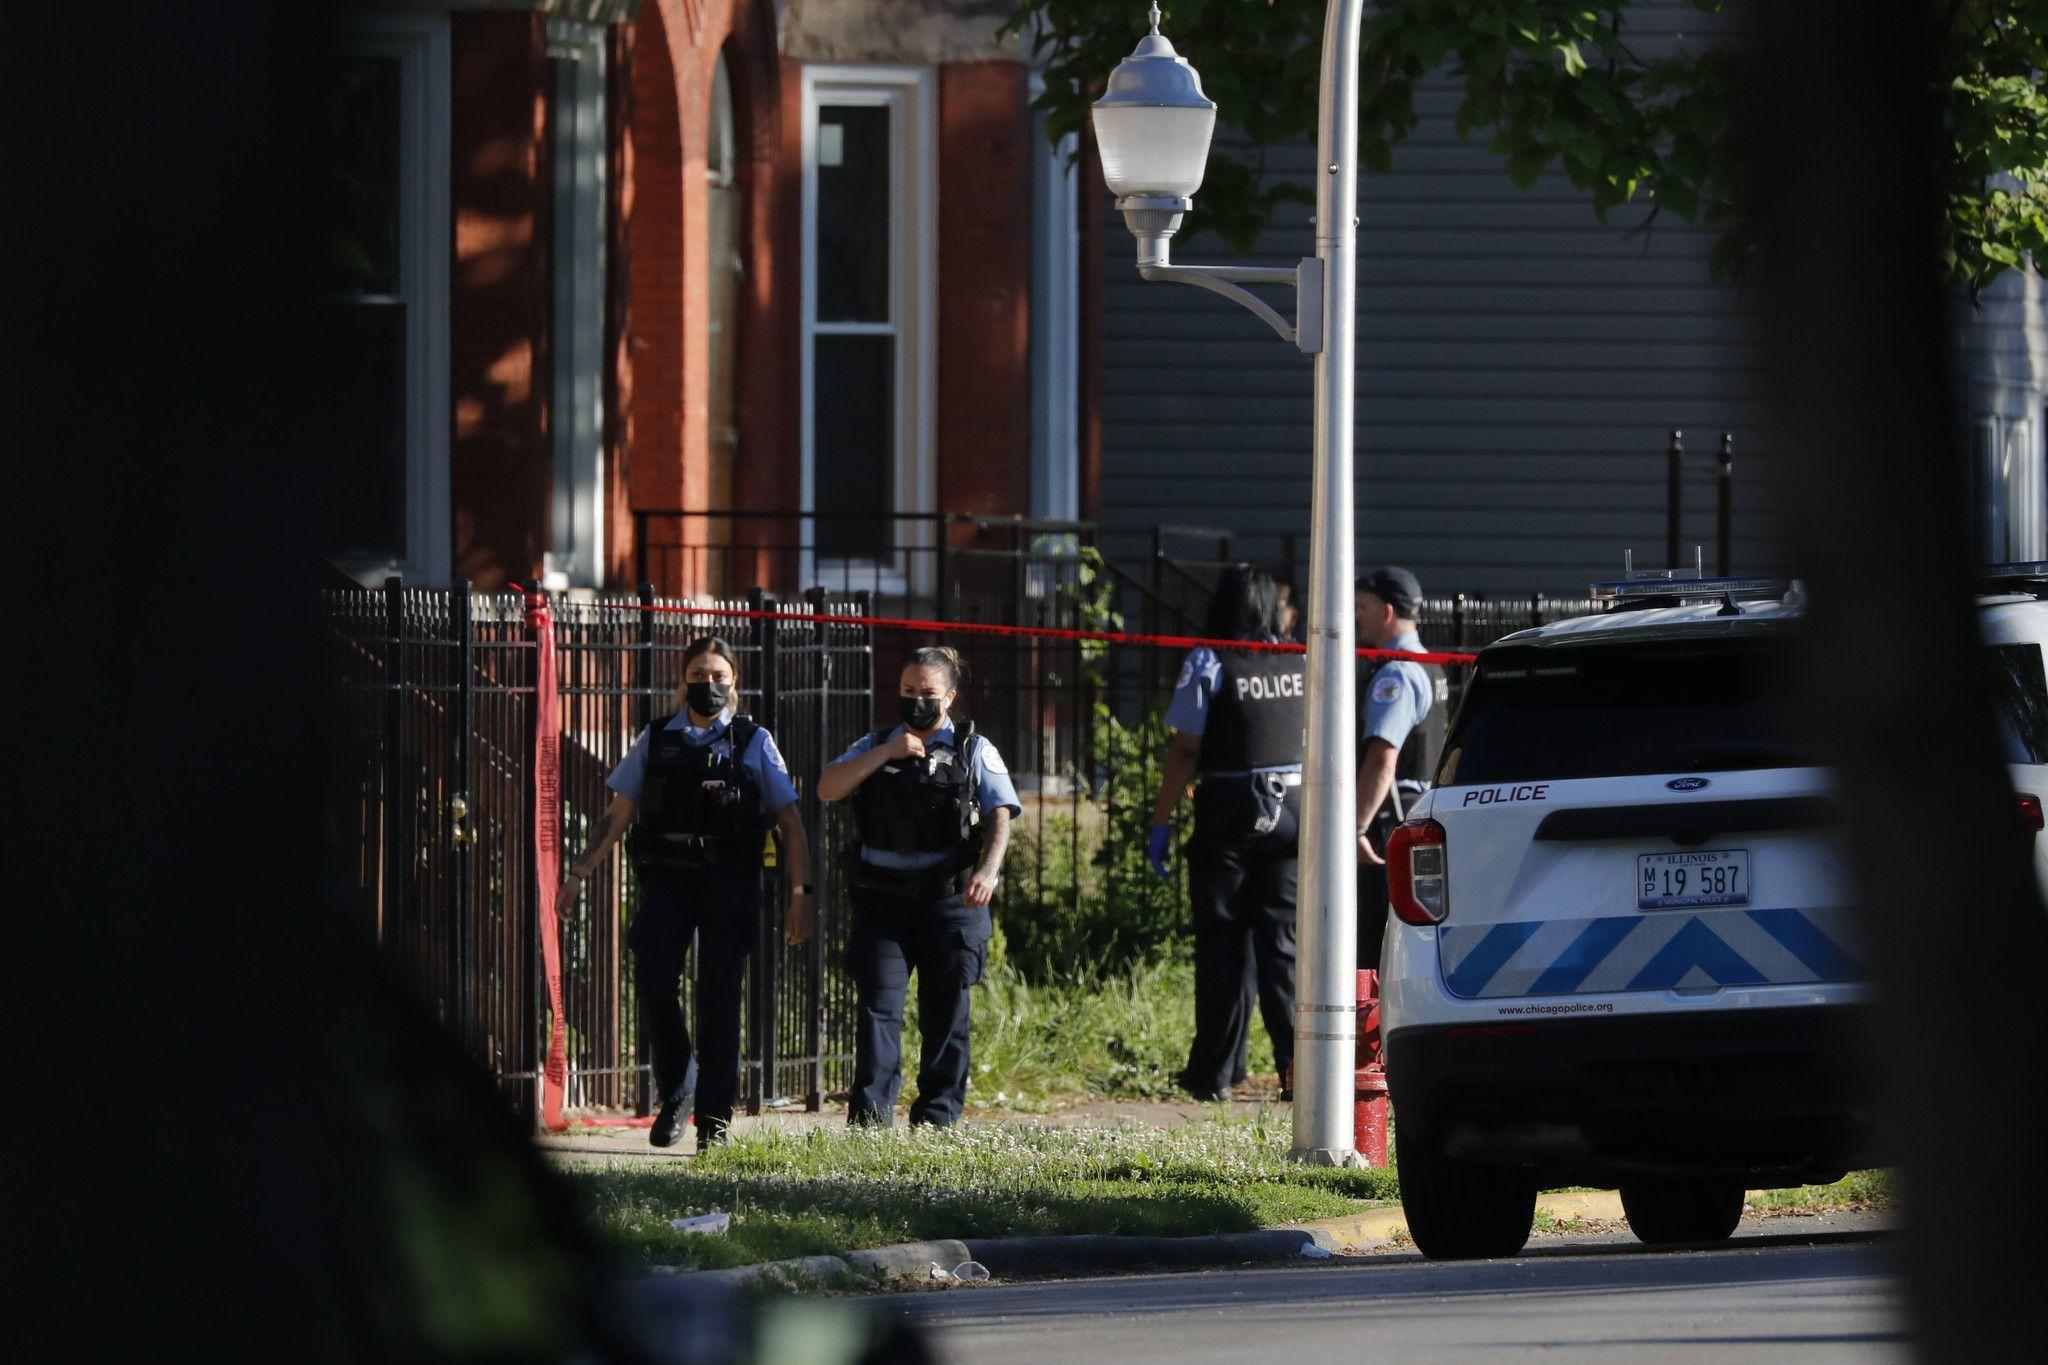 4 dead, 4 wounded in early morning Chicago shooting